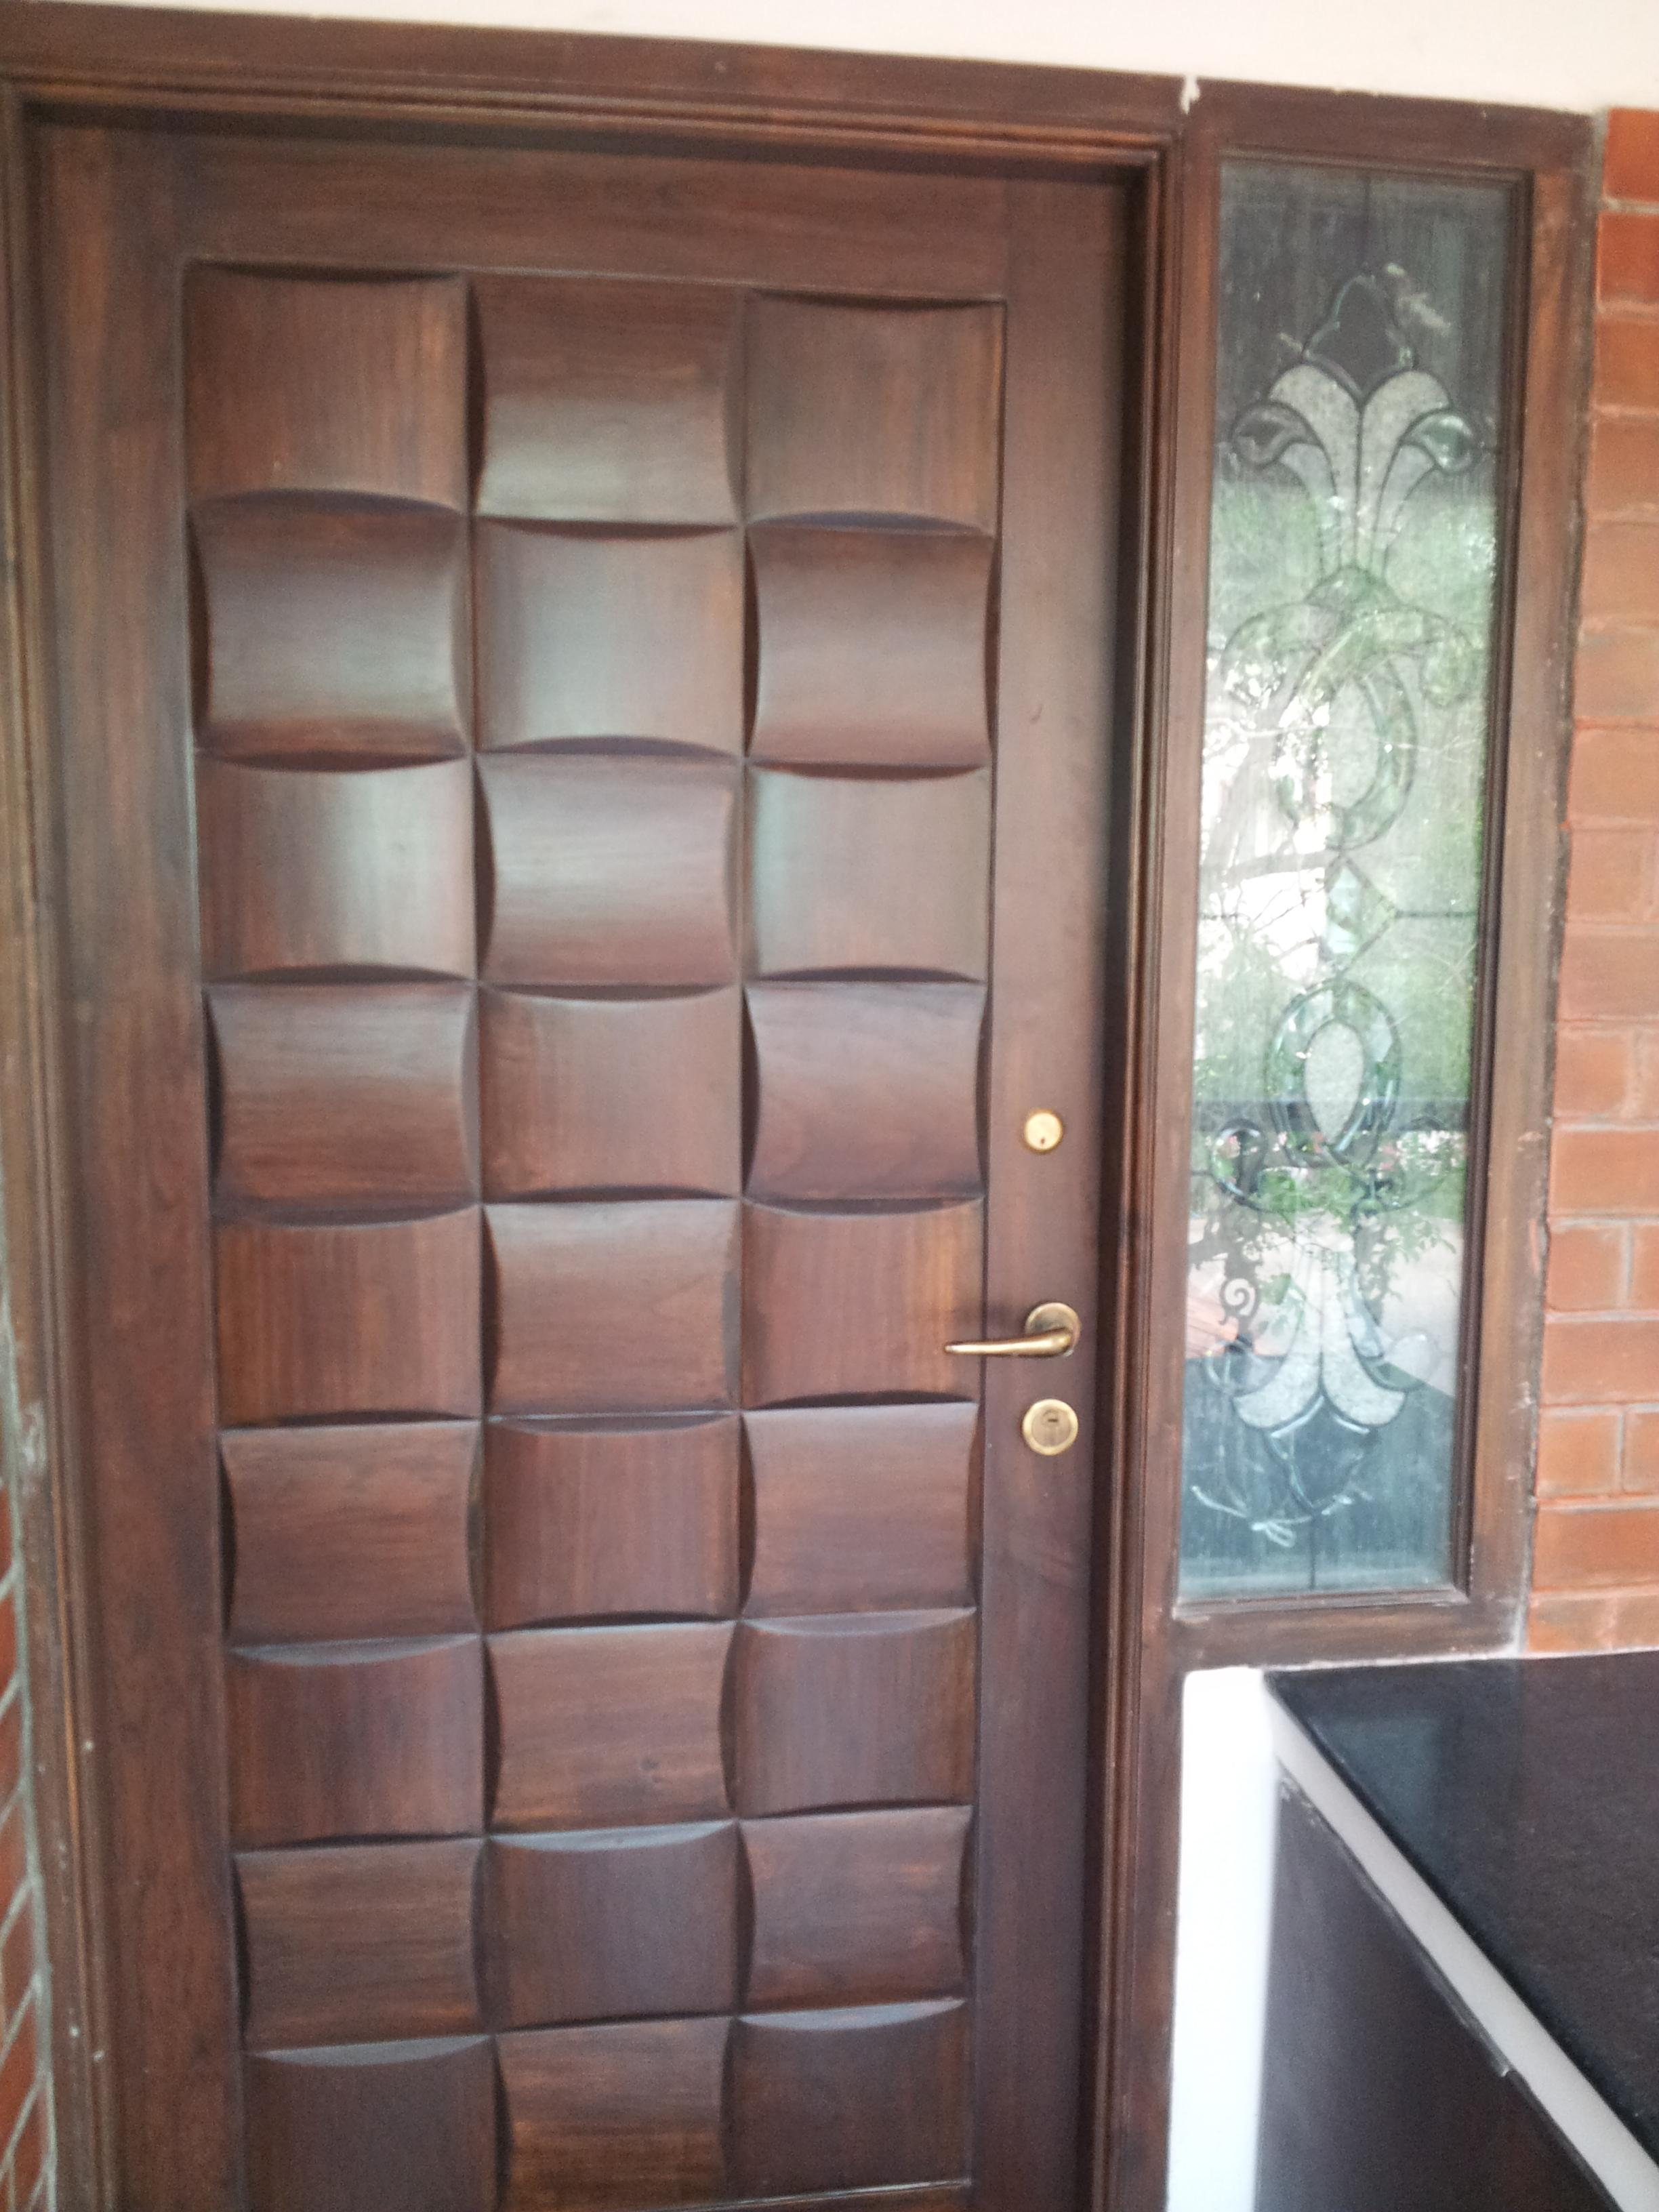 Main door design in wood very popular in 2013 gharexpert for External door designs